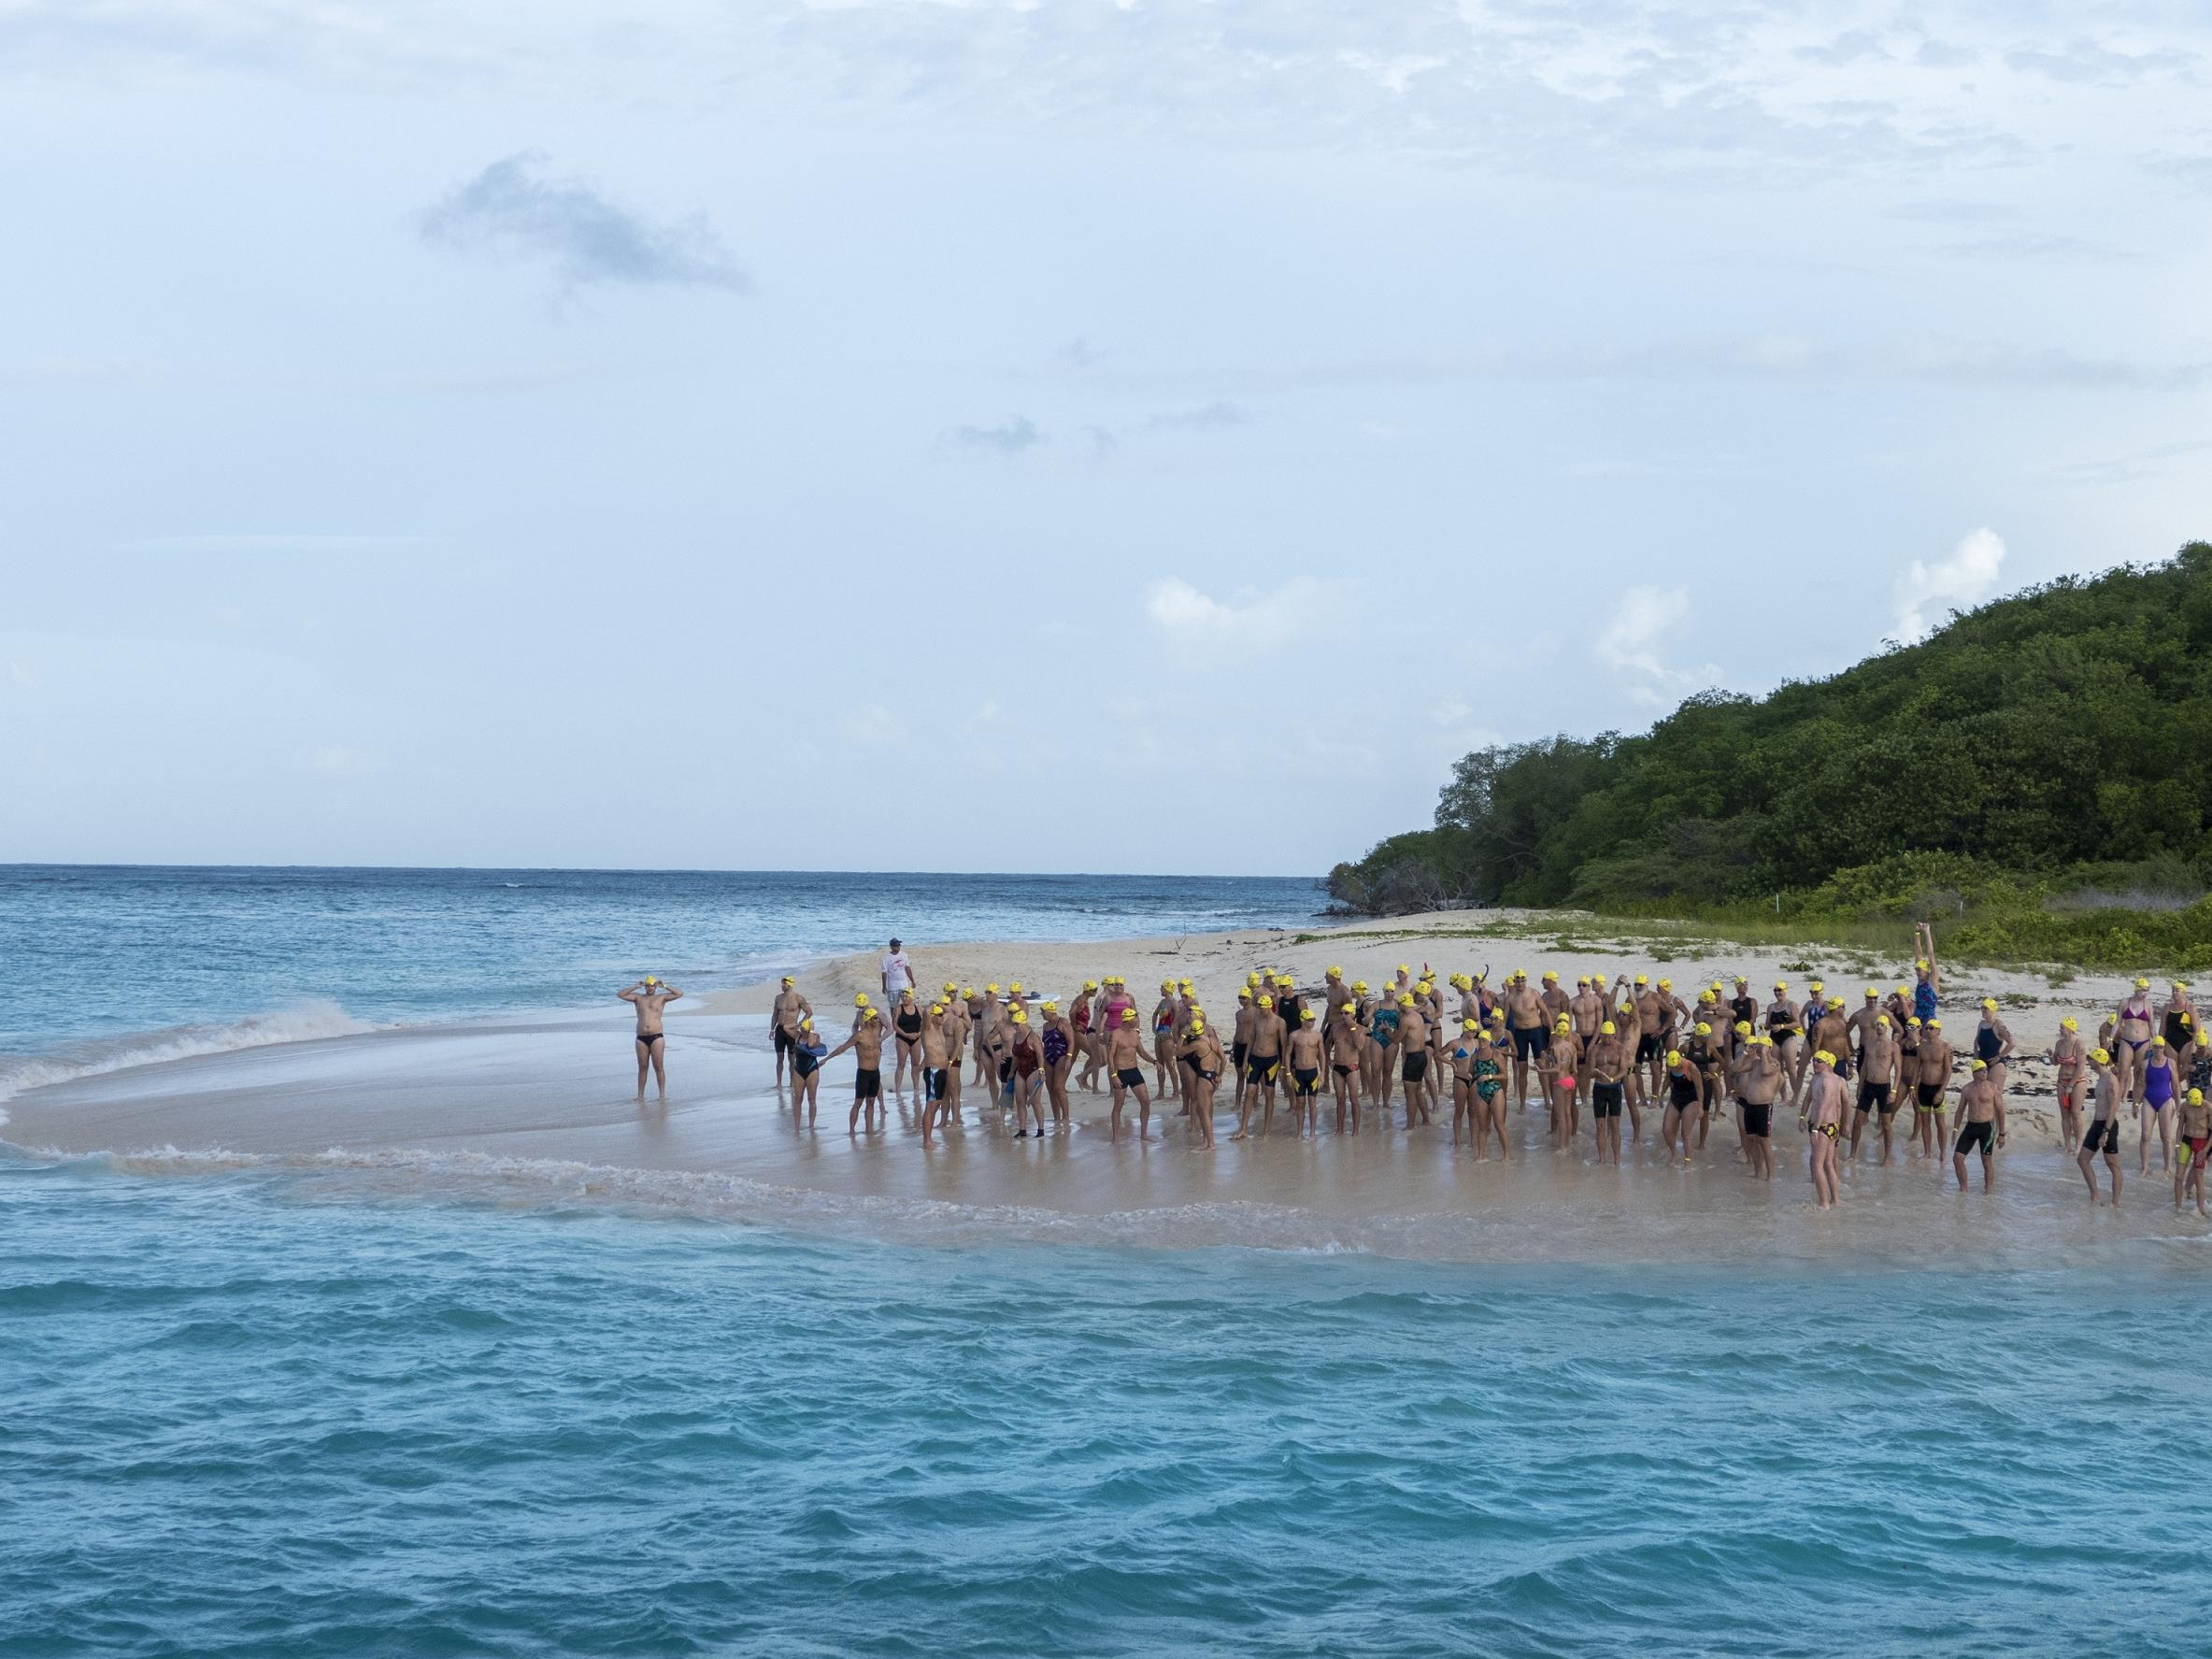 Coral Reef Swim Race Participants on Beach